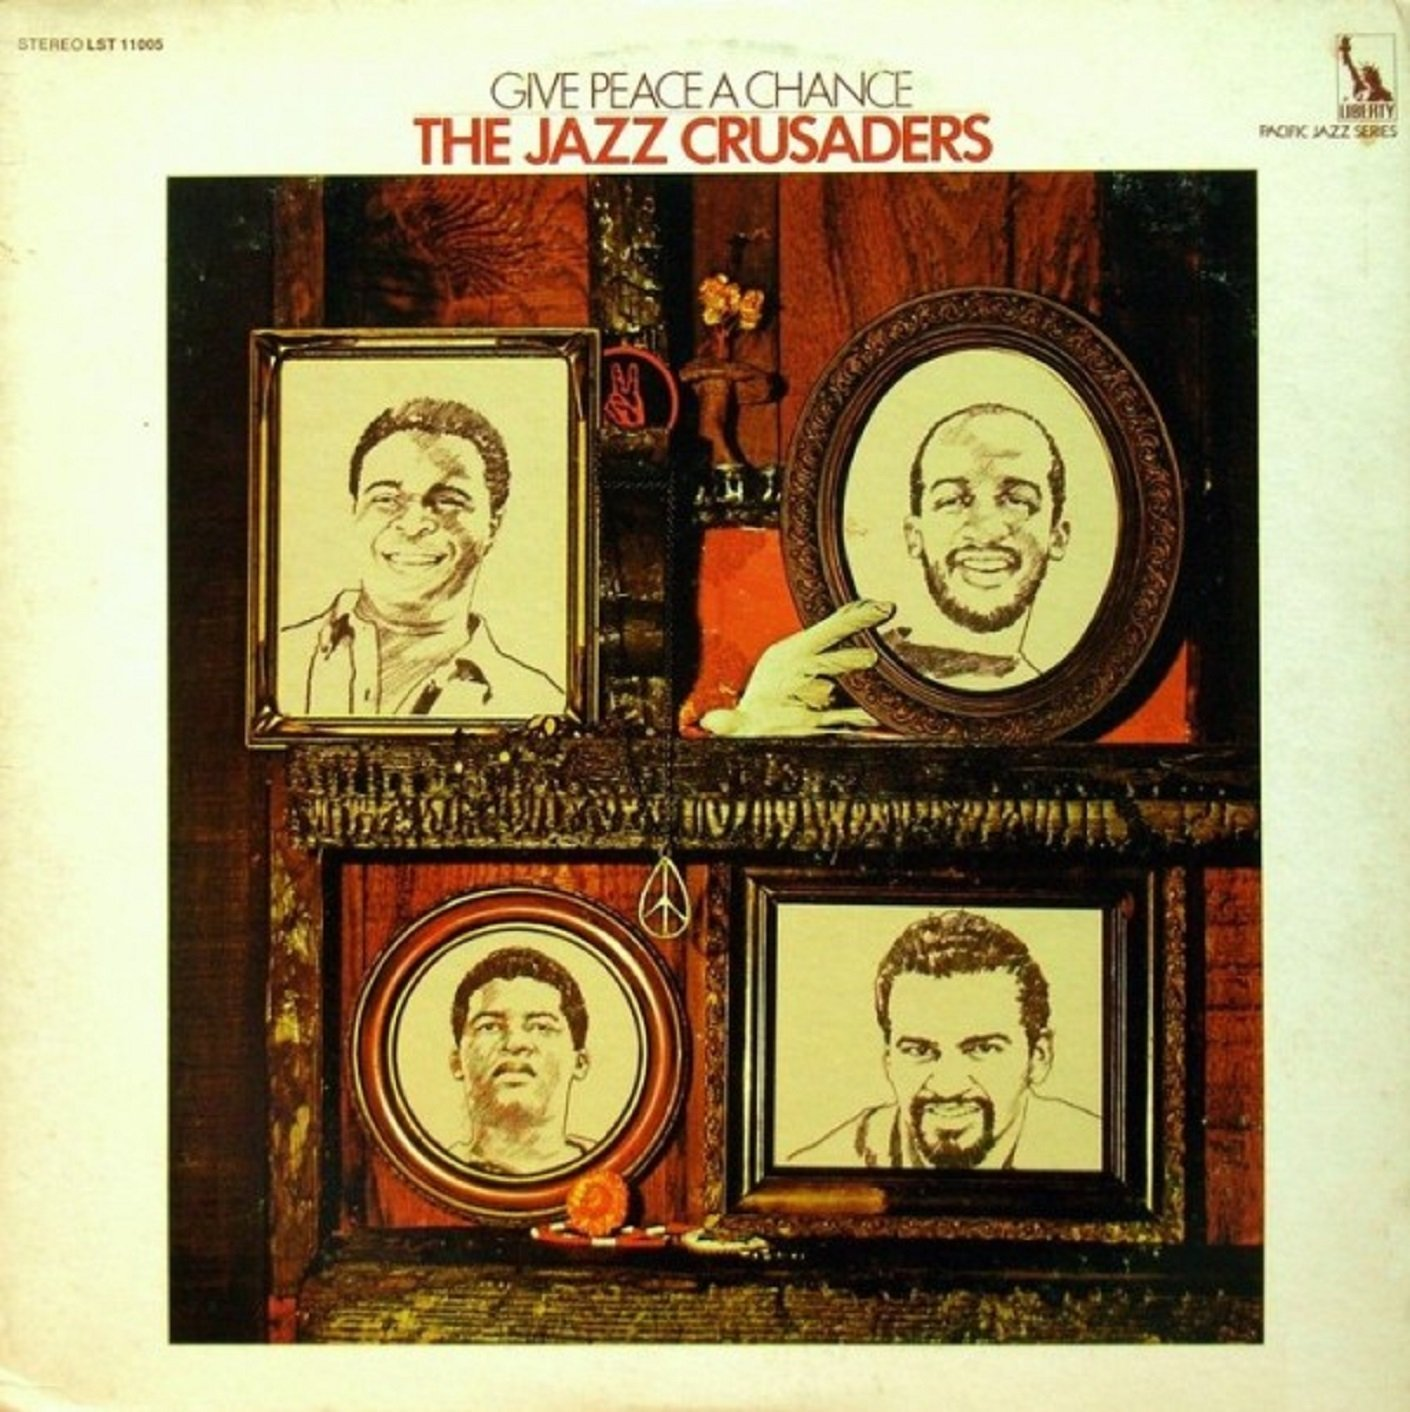 1970 The Jazz Crusaders – Give Peace a Chance